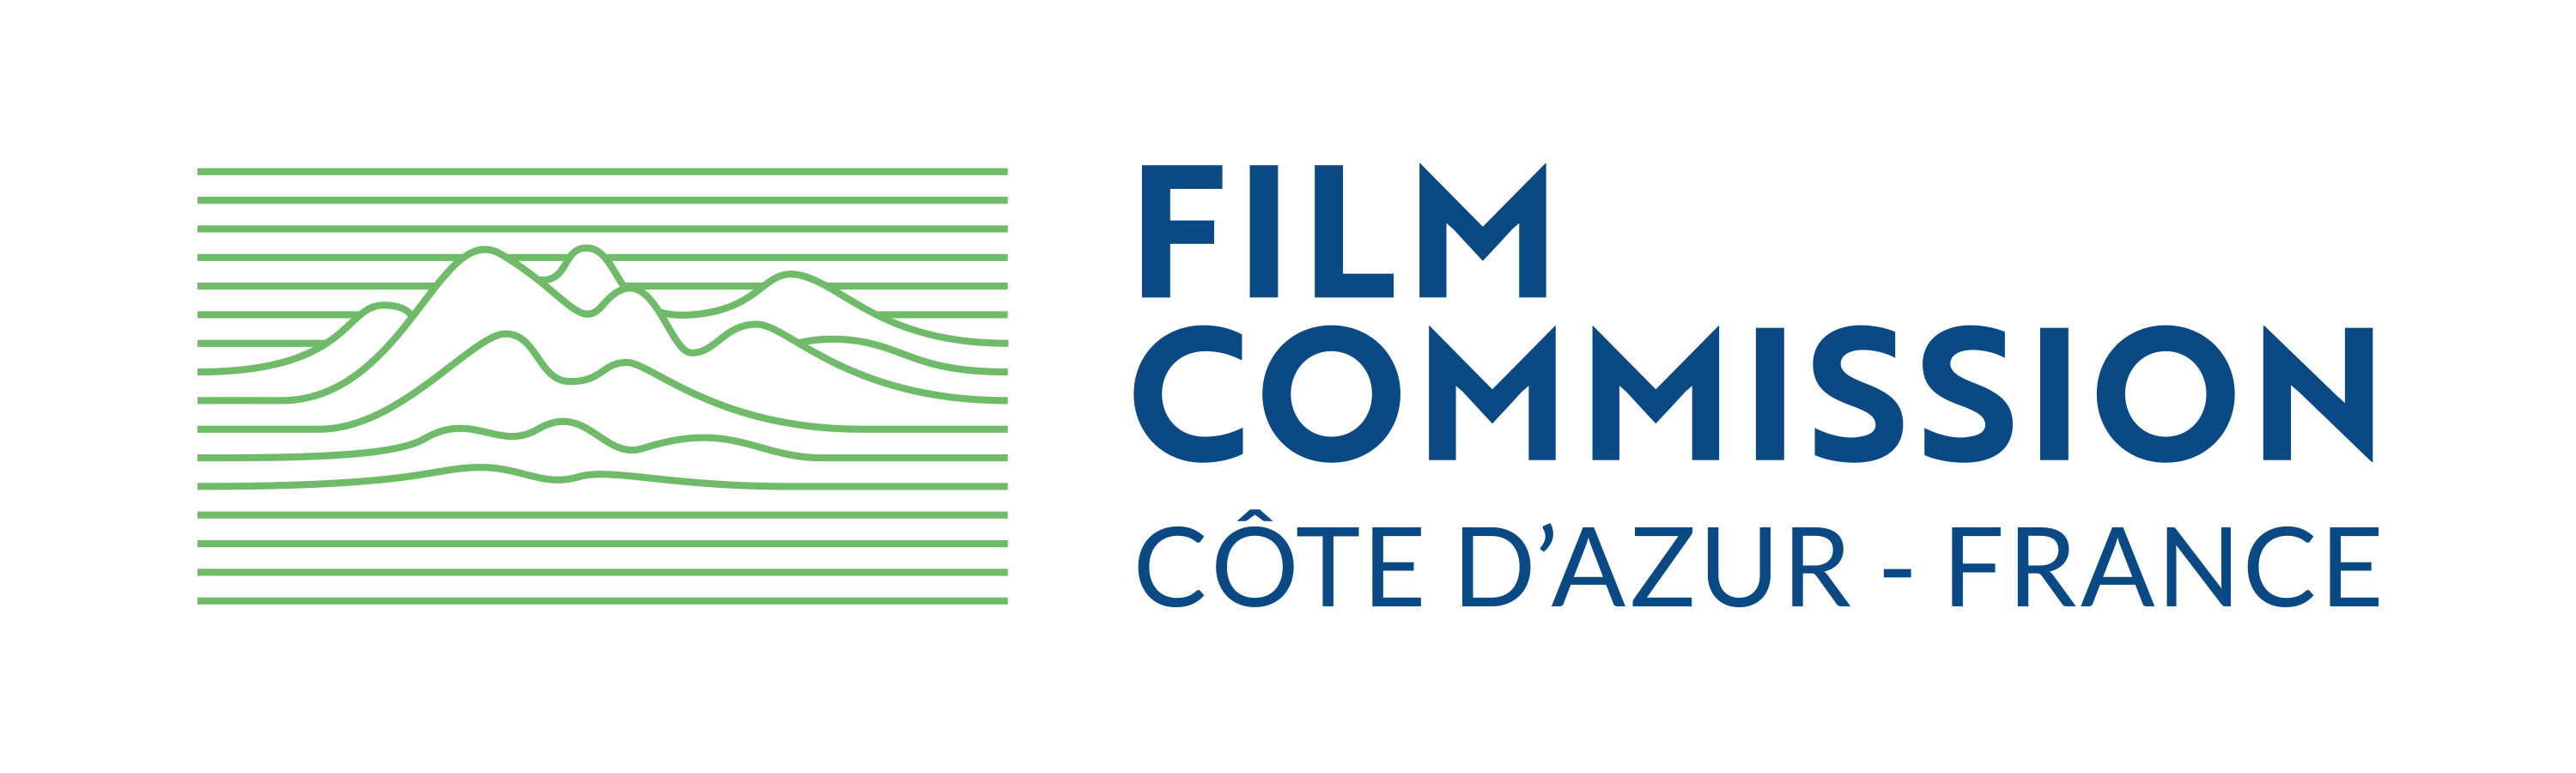 Film Commission Logo - Green & Blue